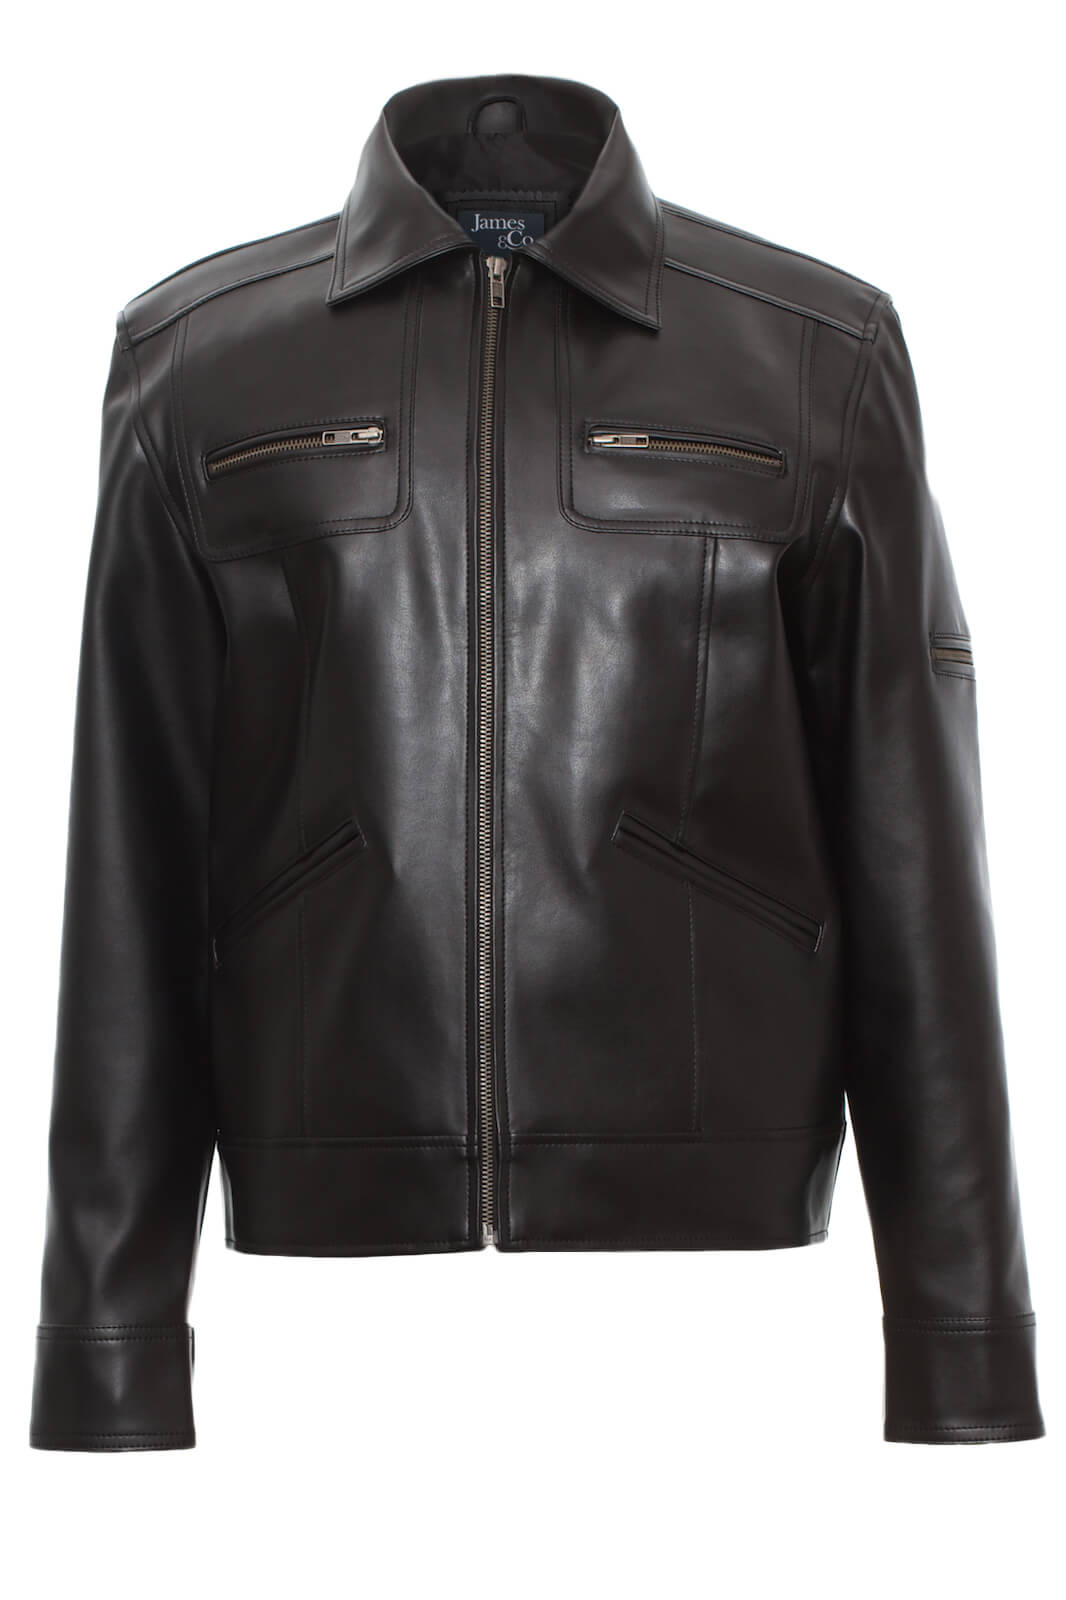 Just Ahead Of His 62nd Birthday PETA Has Sent A Gift To Prime Minister Malcolm Turnbull Vegan Leather Jacket